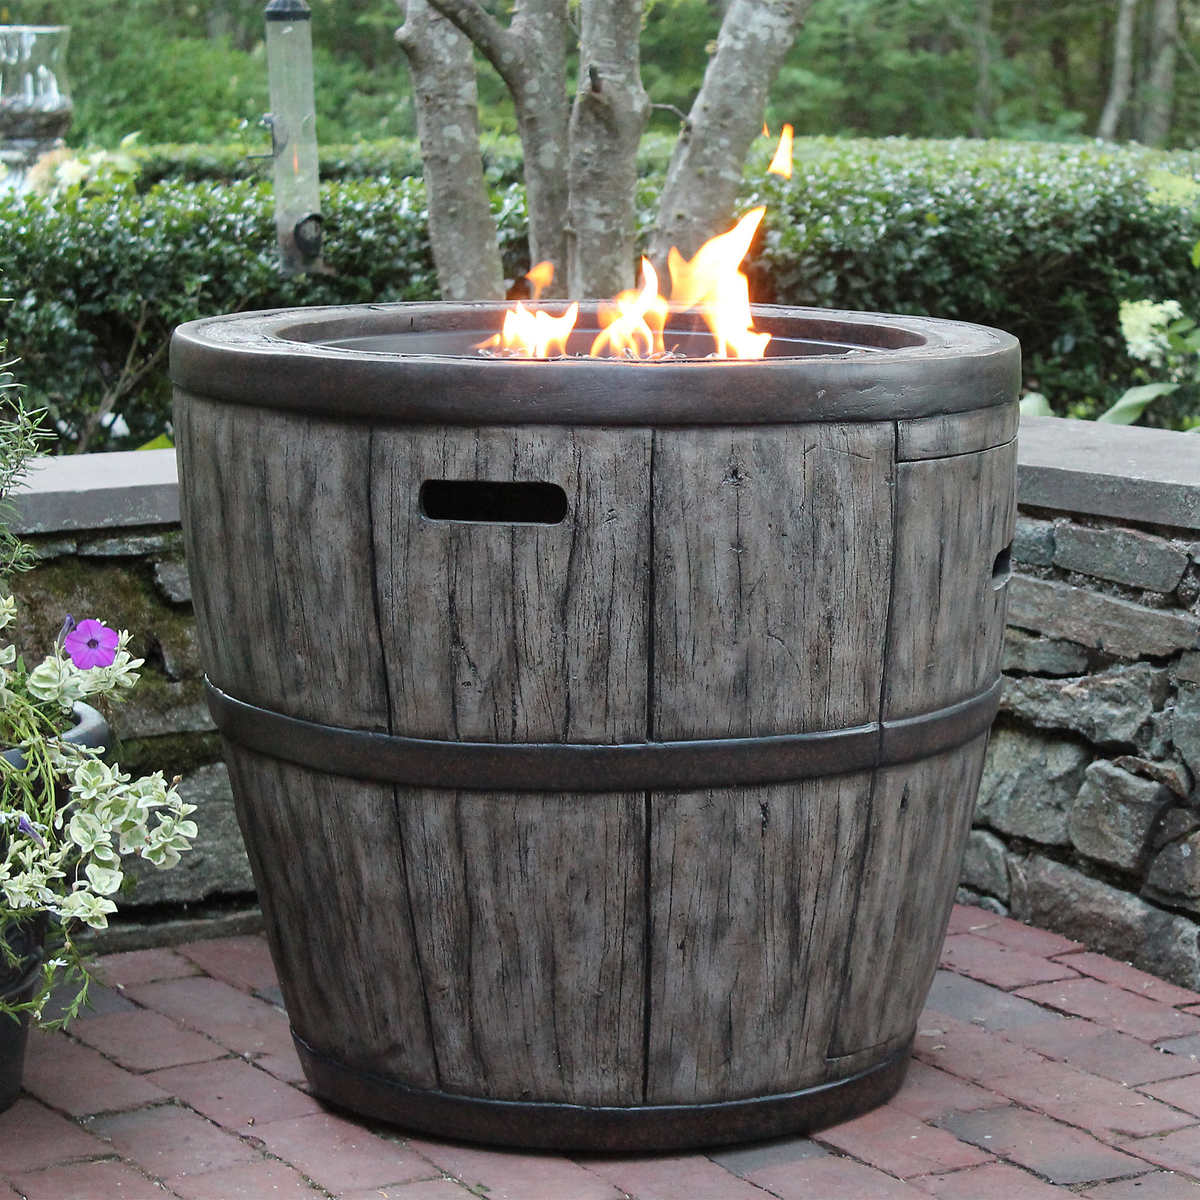 Wine Barrel Fire Table - Fire Pits & Chat Sets